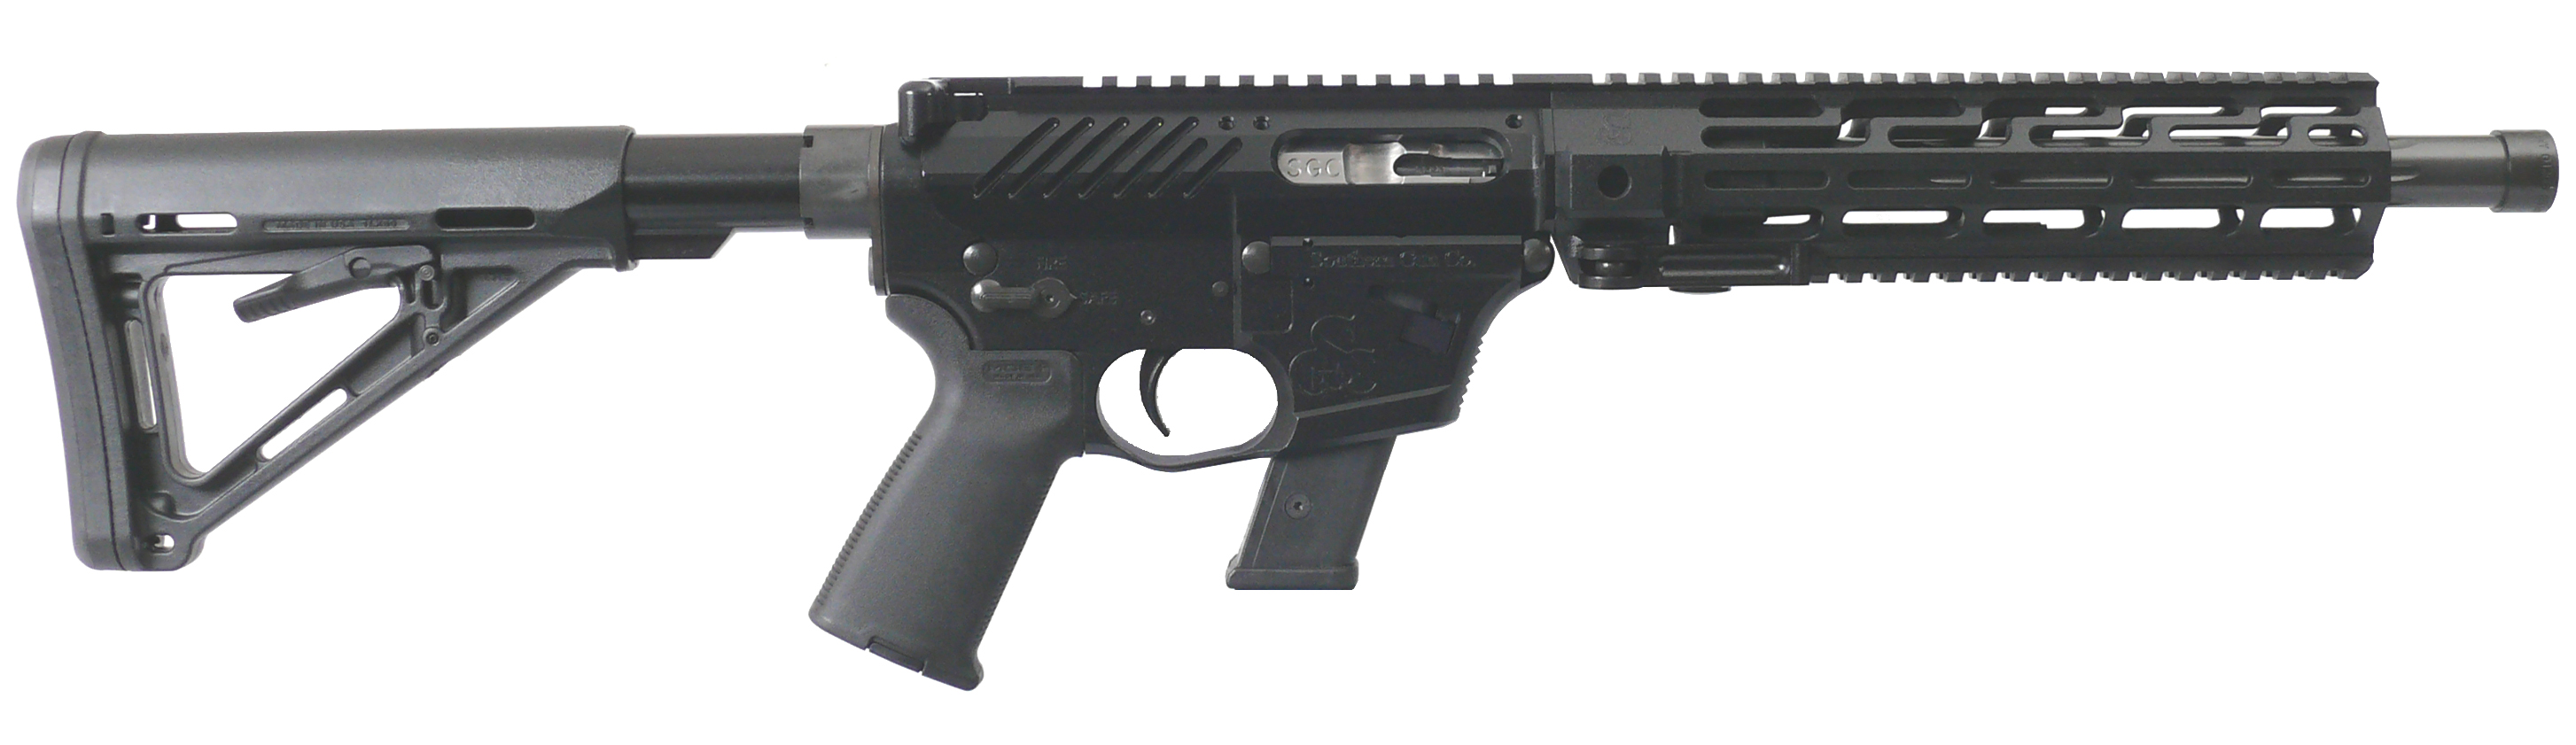 9mm Lever Release Carbine